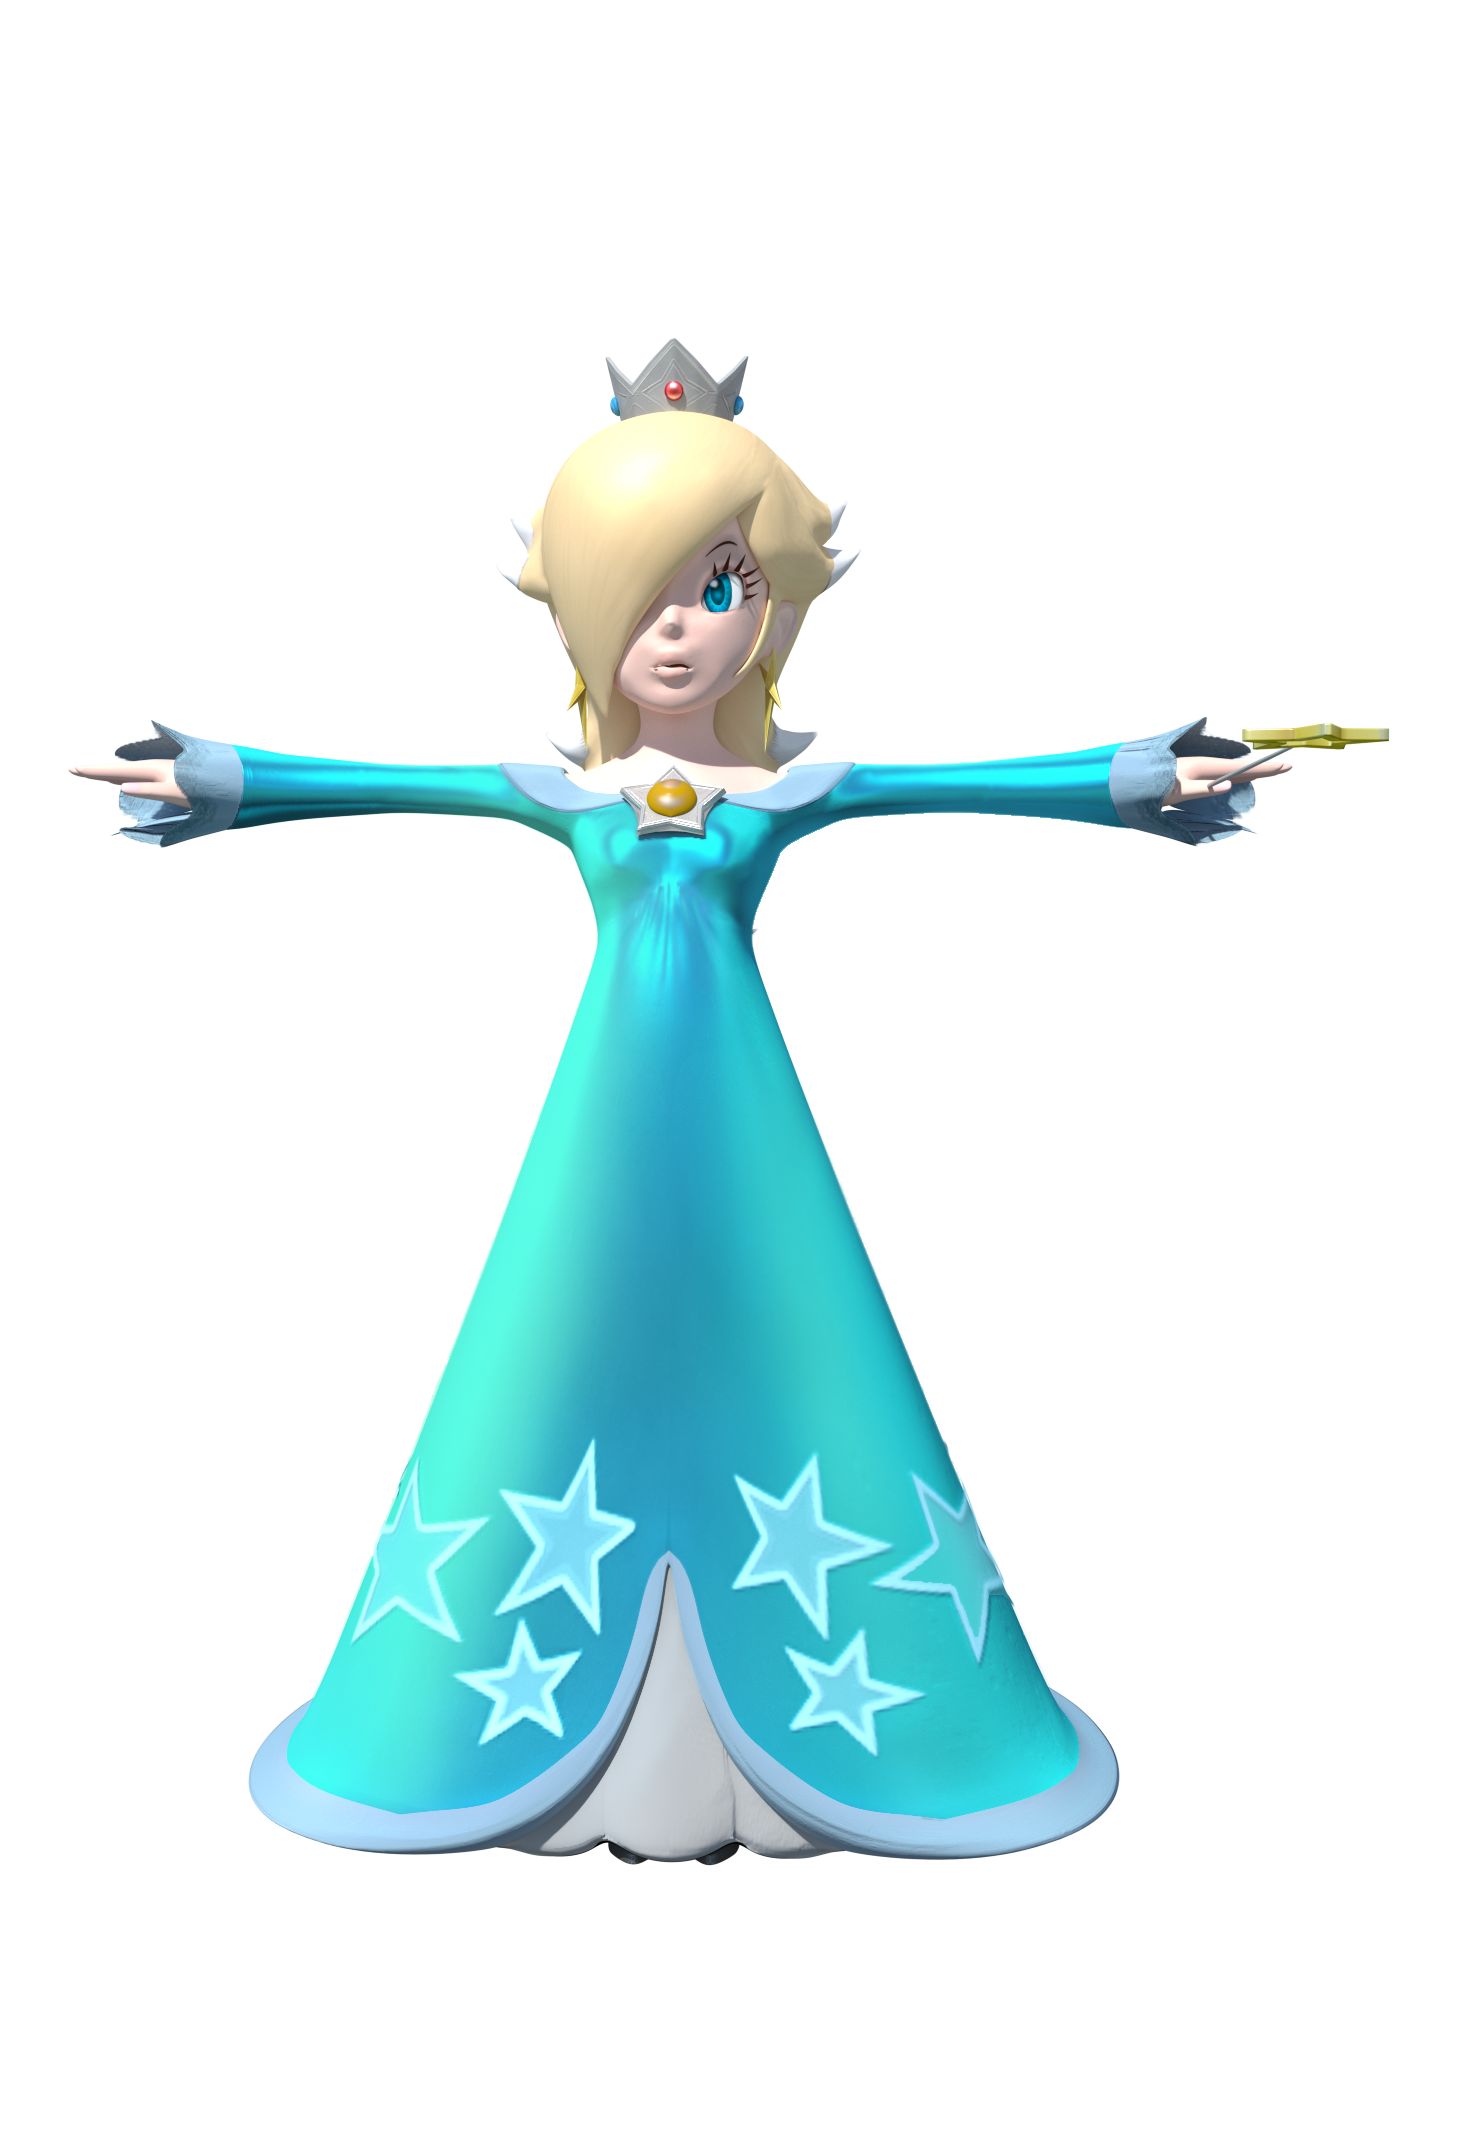 rosalina_render_by_nobody661-d9dgz1f.png